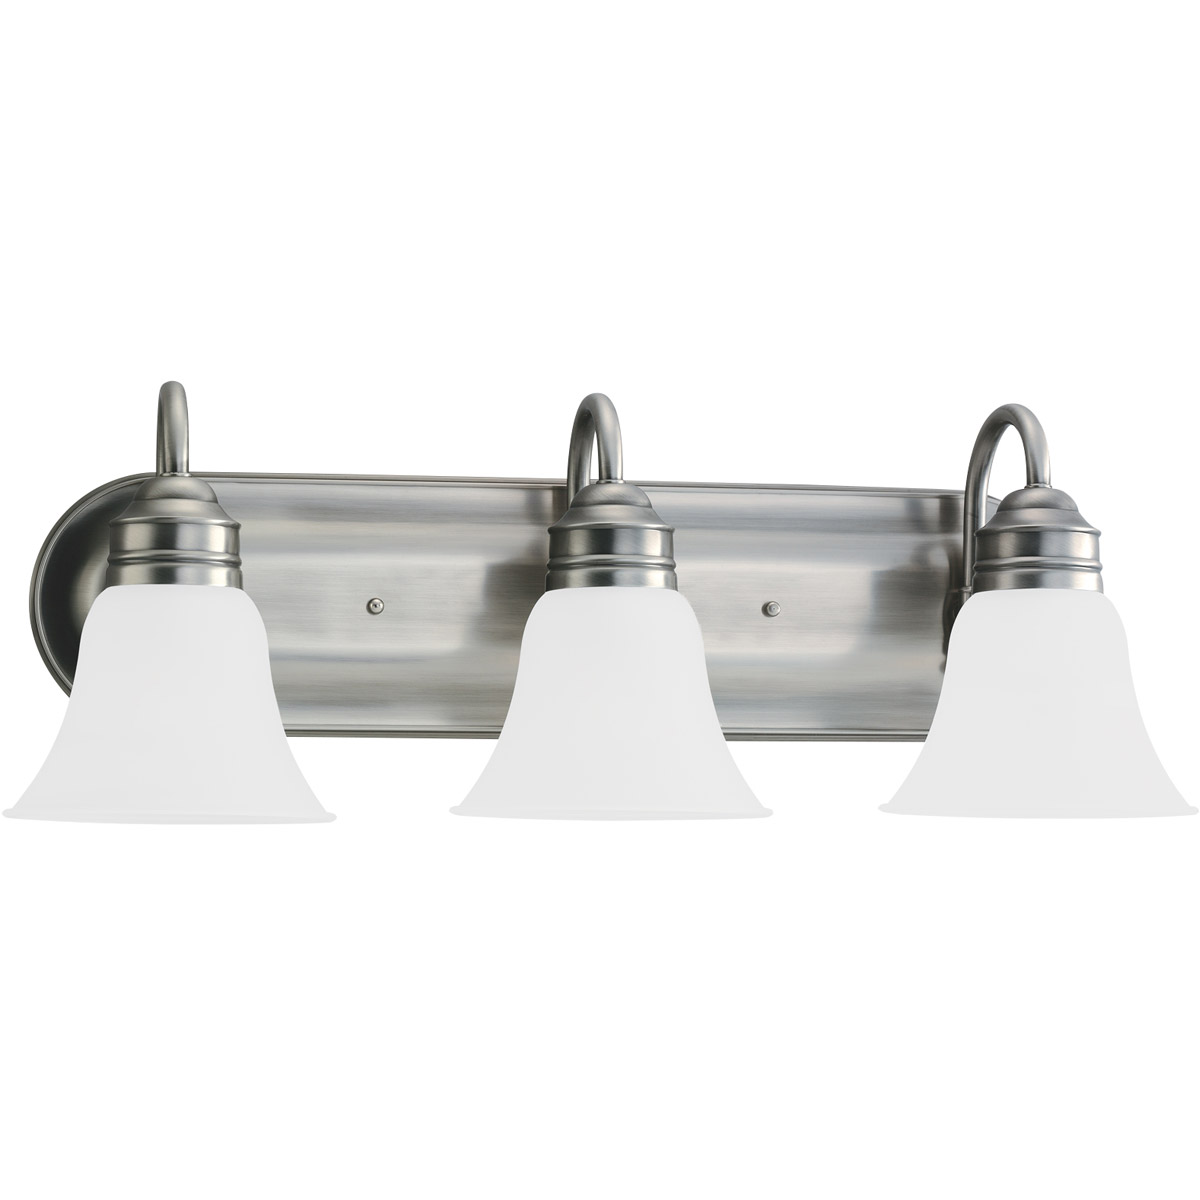 Sea Gull 44852-965 Gladstone 3 Light 24 inch Antique Brushed Nickel Bath Vanity Wall Light in Satin Etched Glass photo